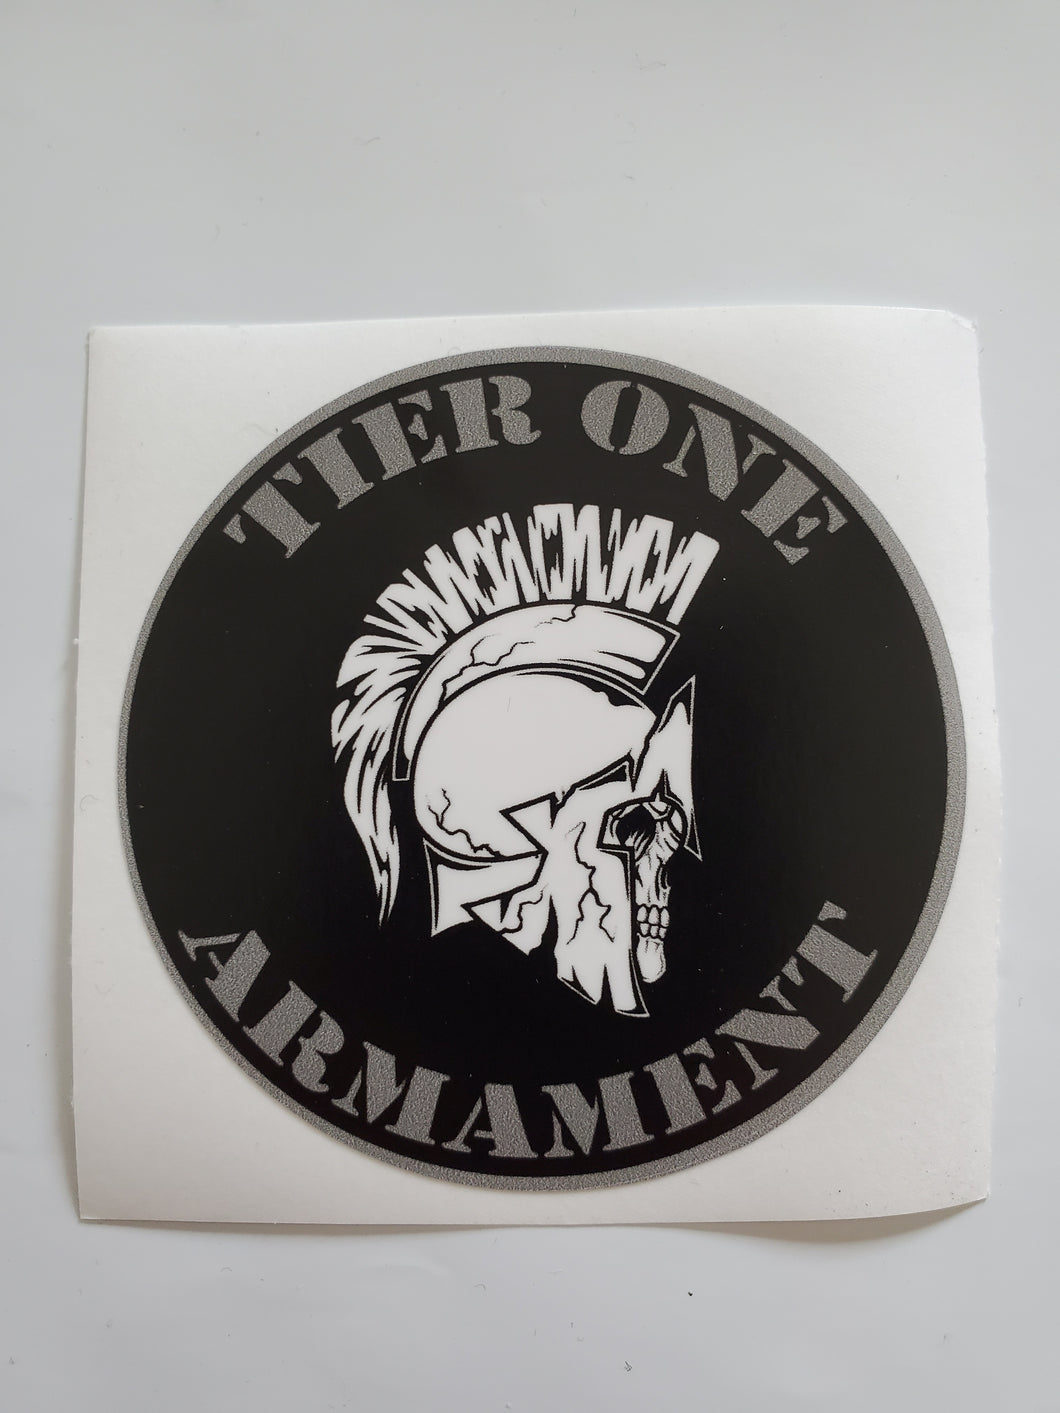 Tier One Armament sticker